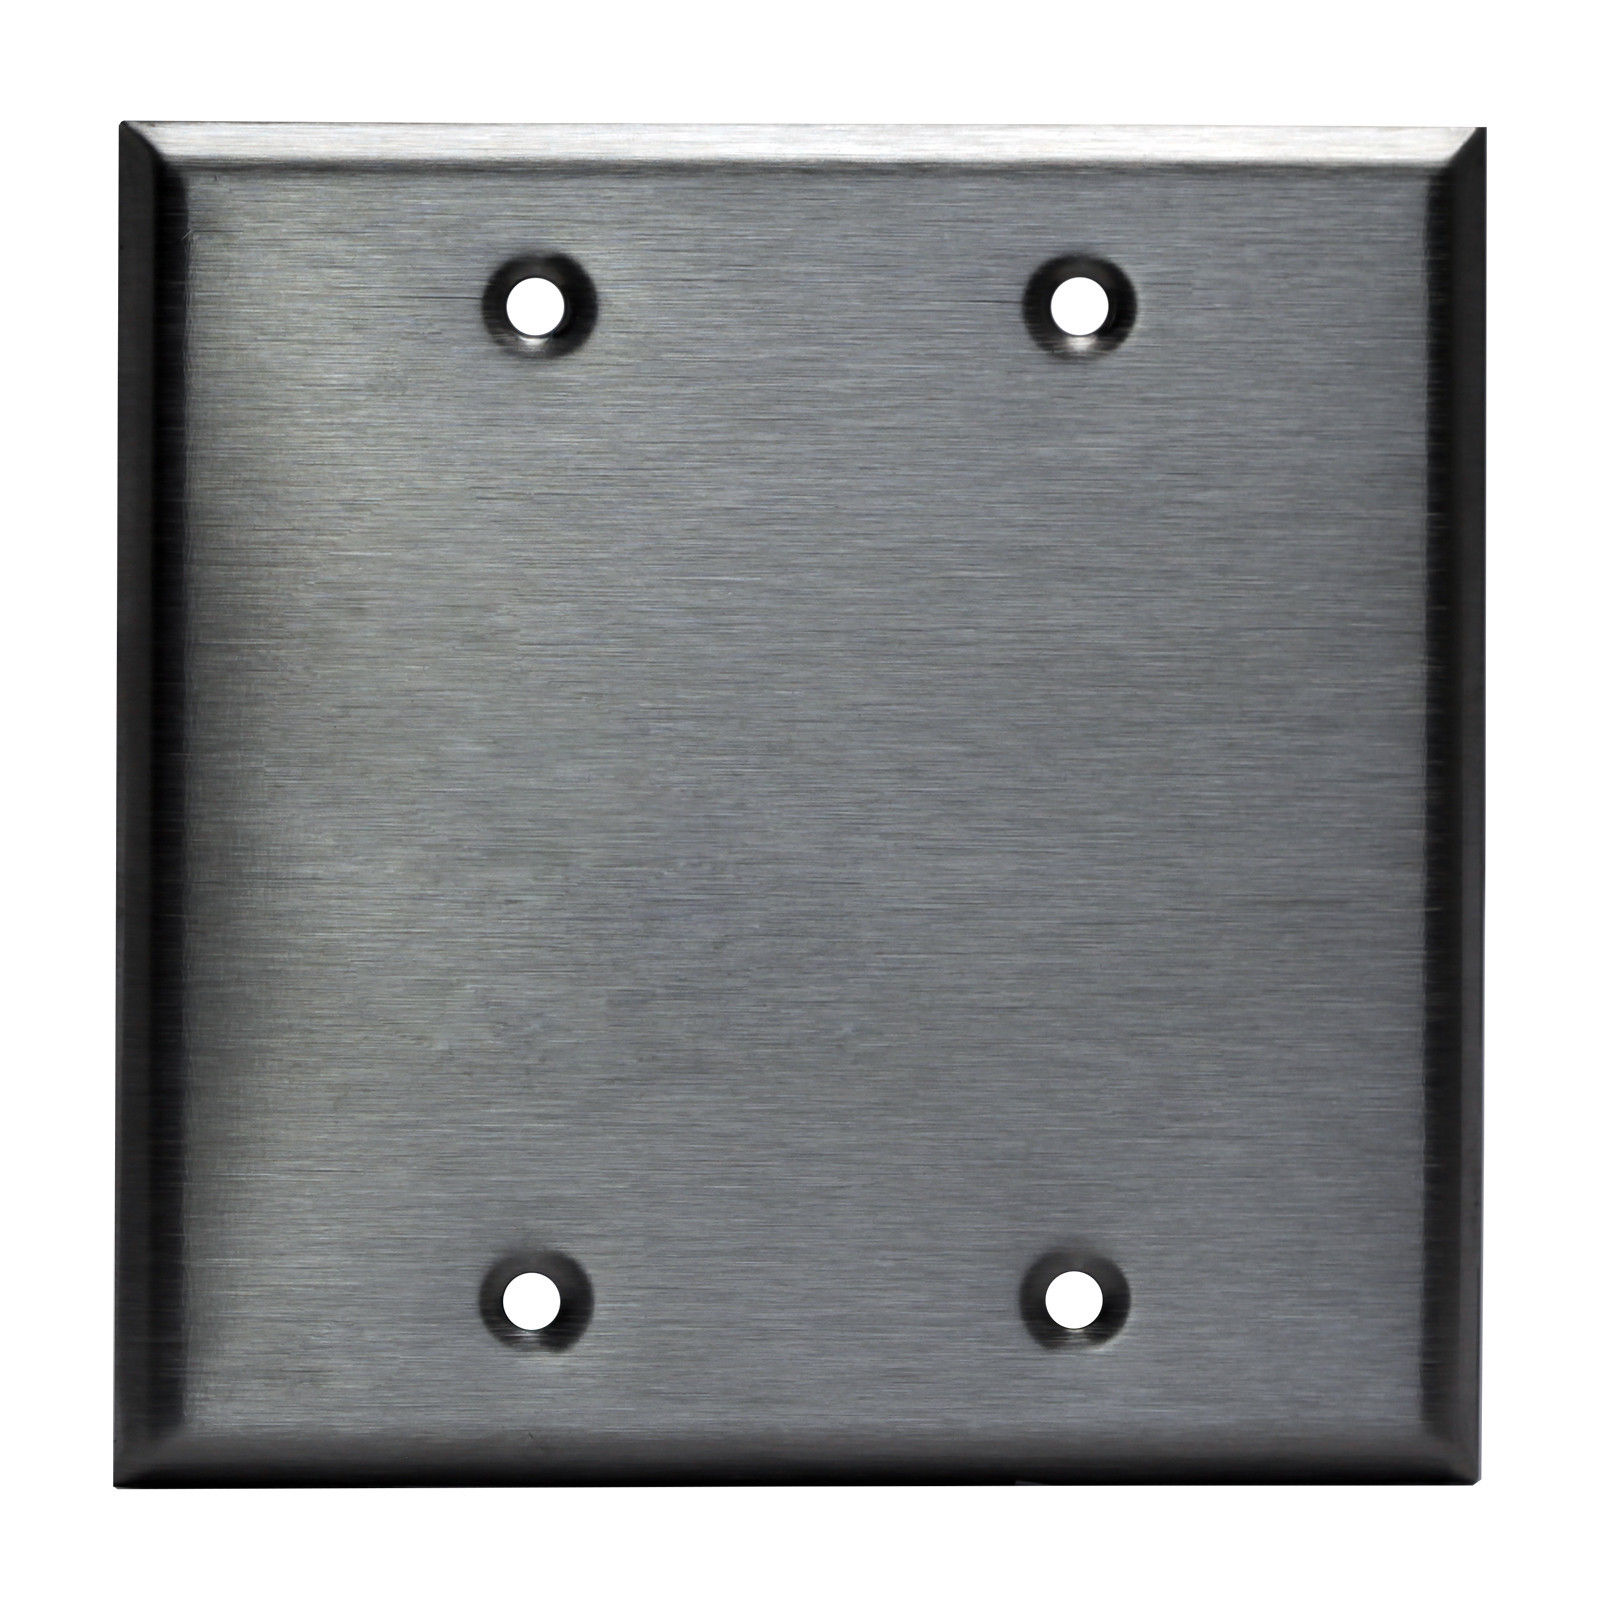 Outlet Cover Plates Entrancing Brushed Stainless Steel Blank Outlet Cover Switch Wall Plates 1 2 Review